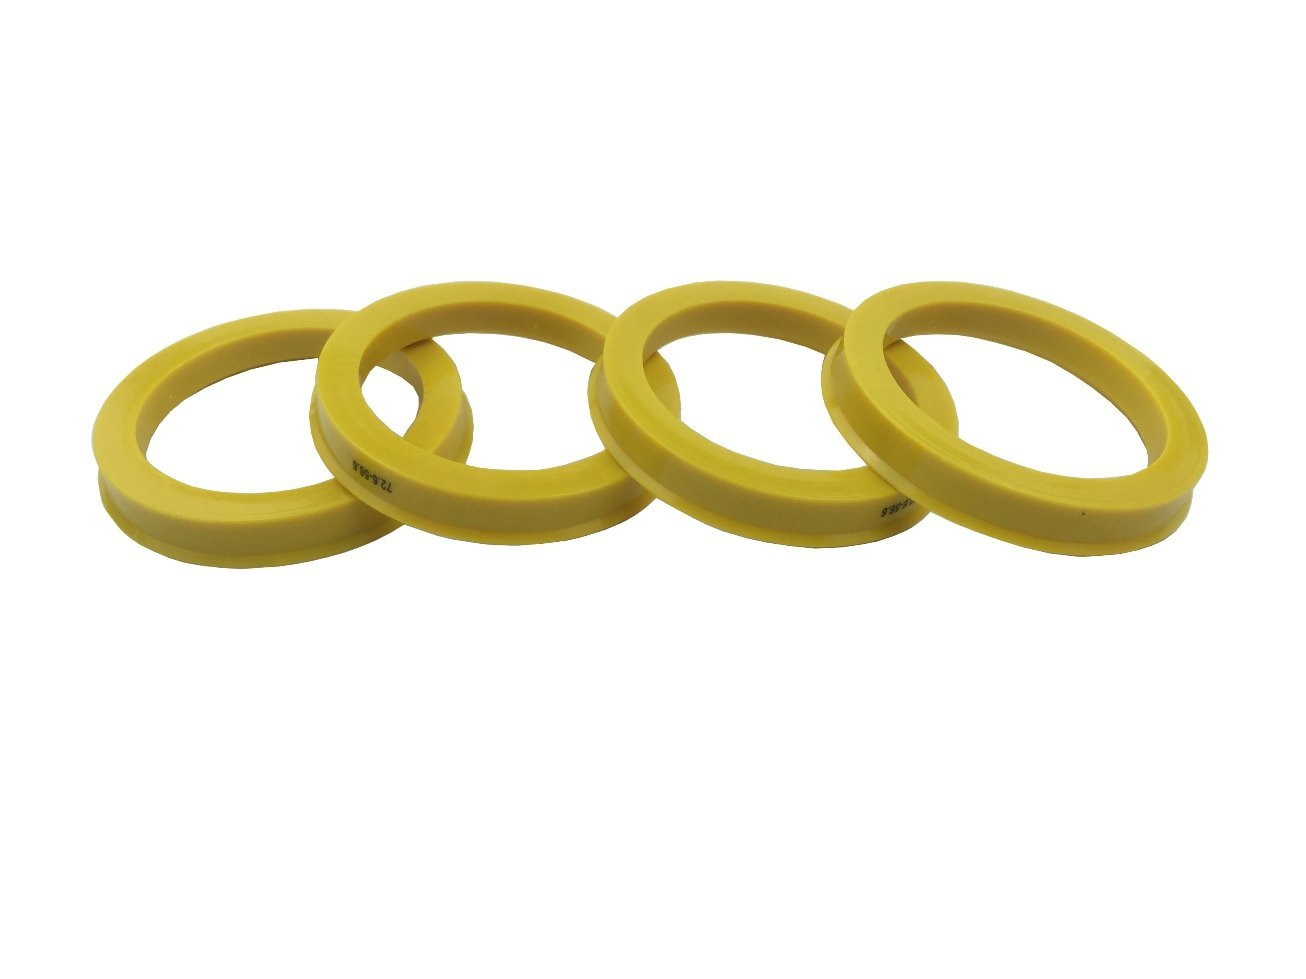 4 Pieces Yellow Poly Carbon Hub Rings 72.6mm OD to 56.6mm ID Hub Centric Rings